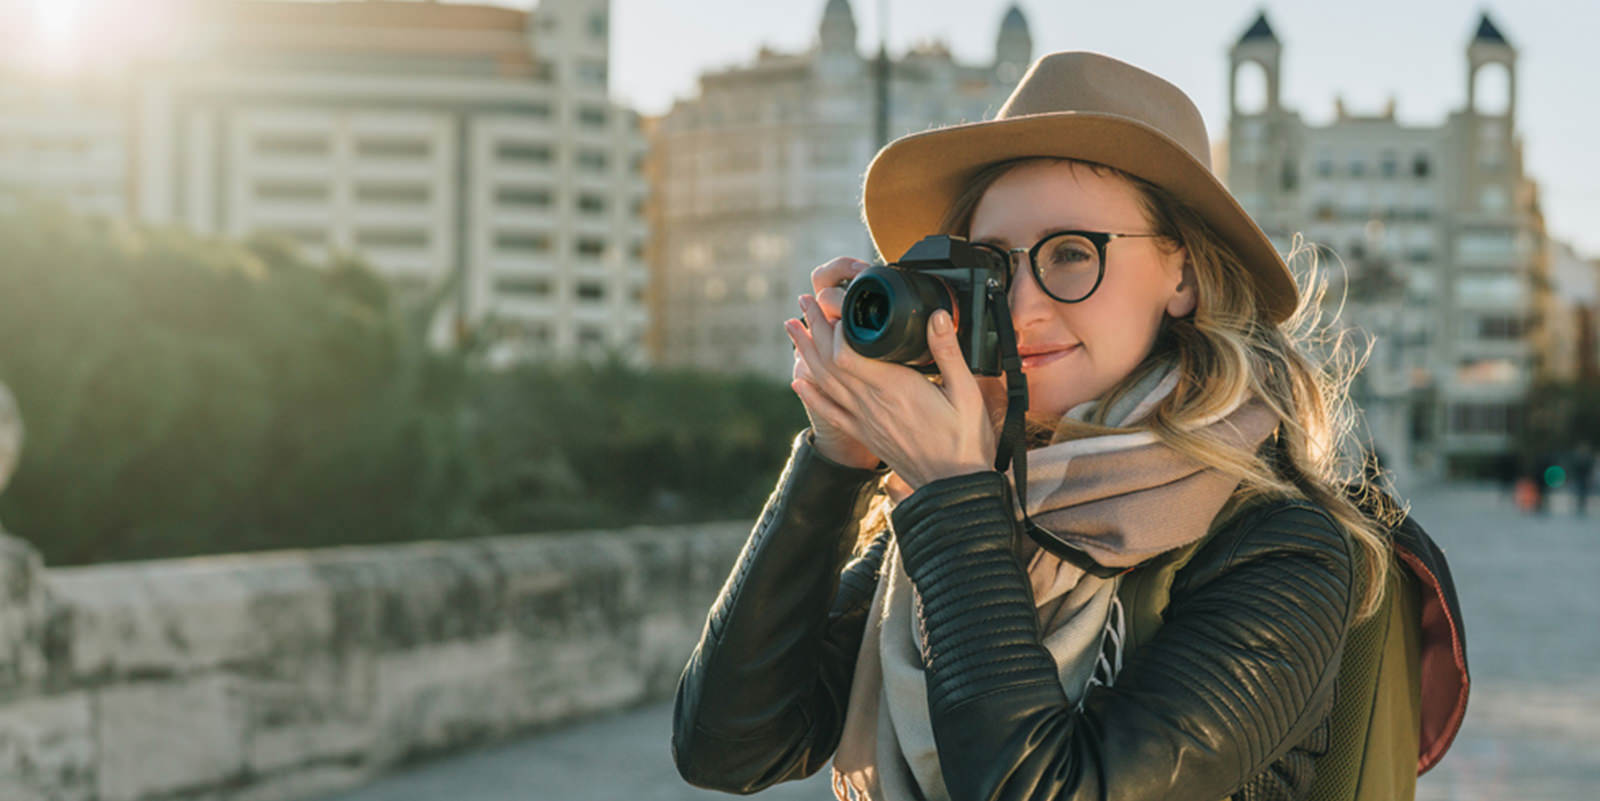 Become a vacation photographer with Captourist